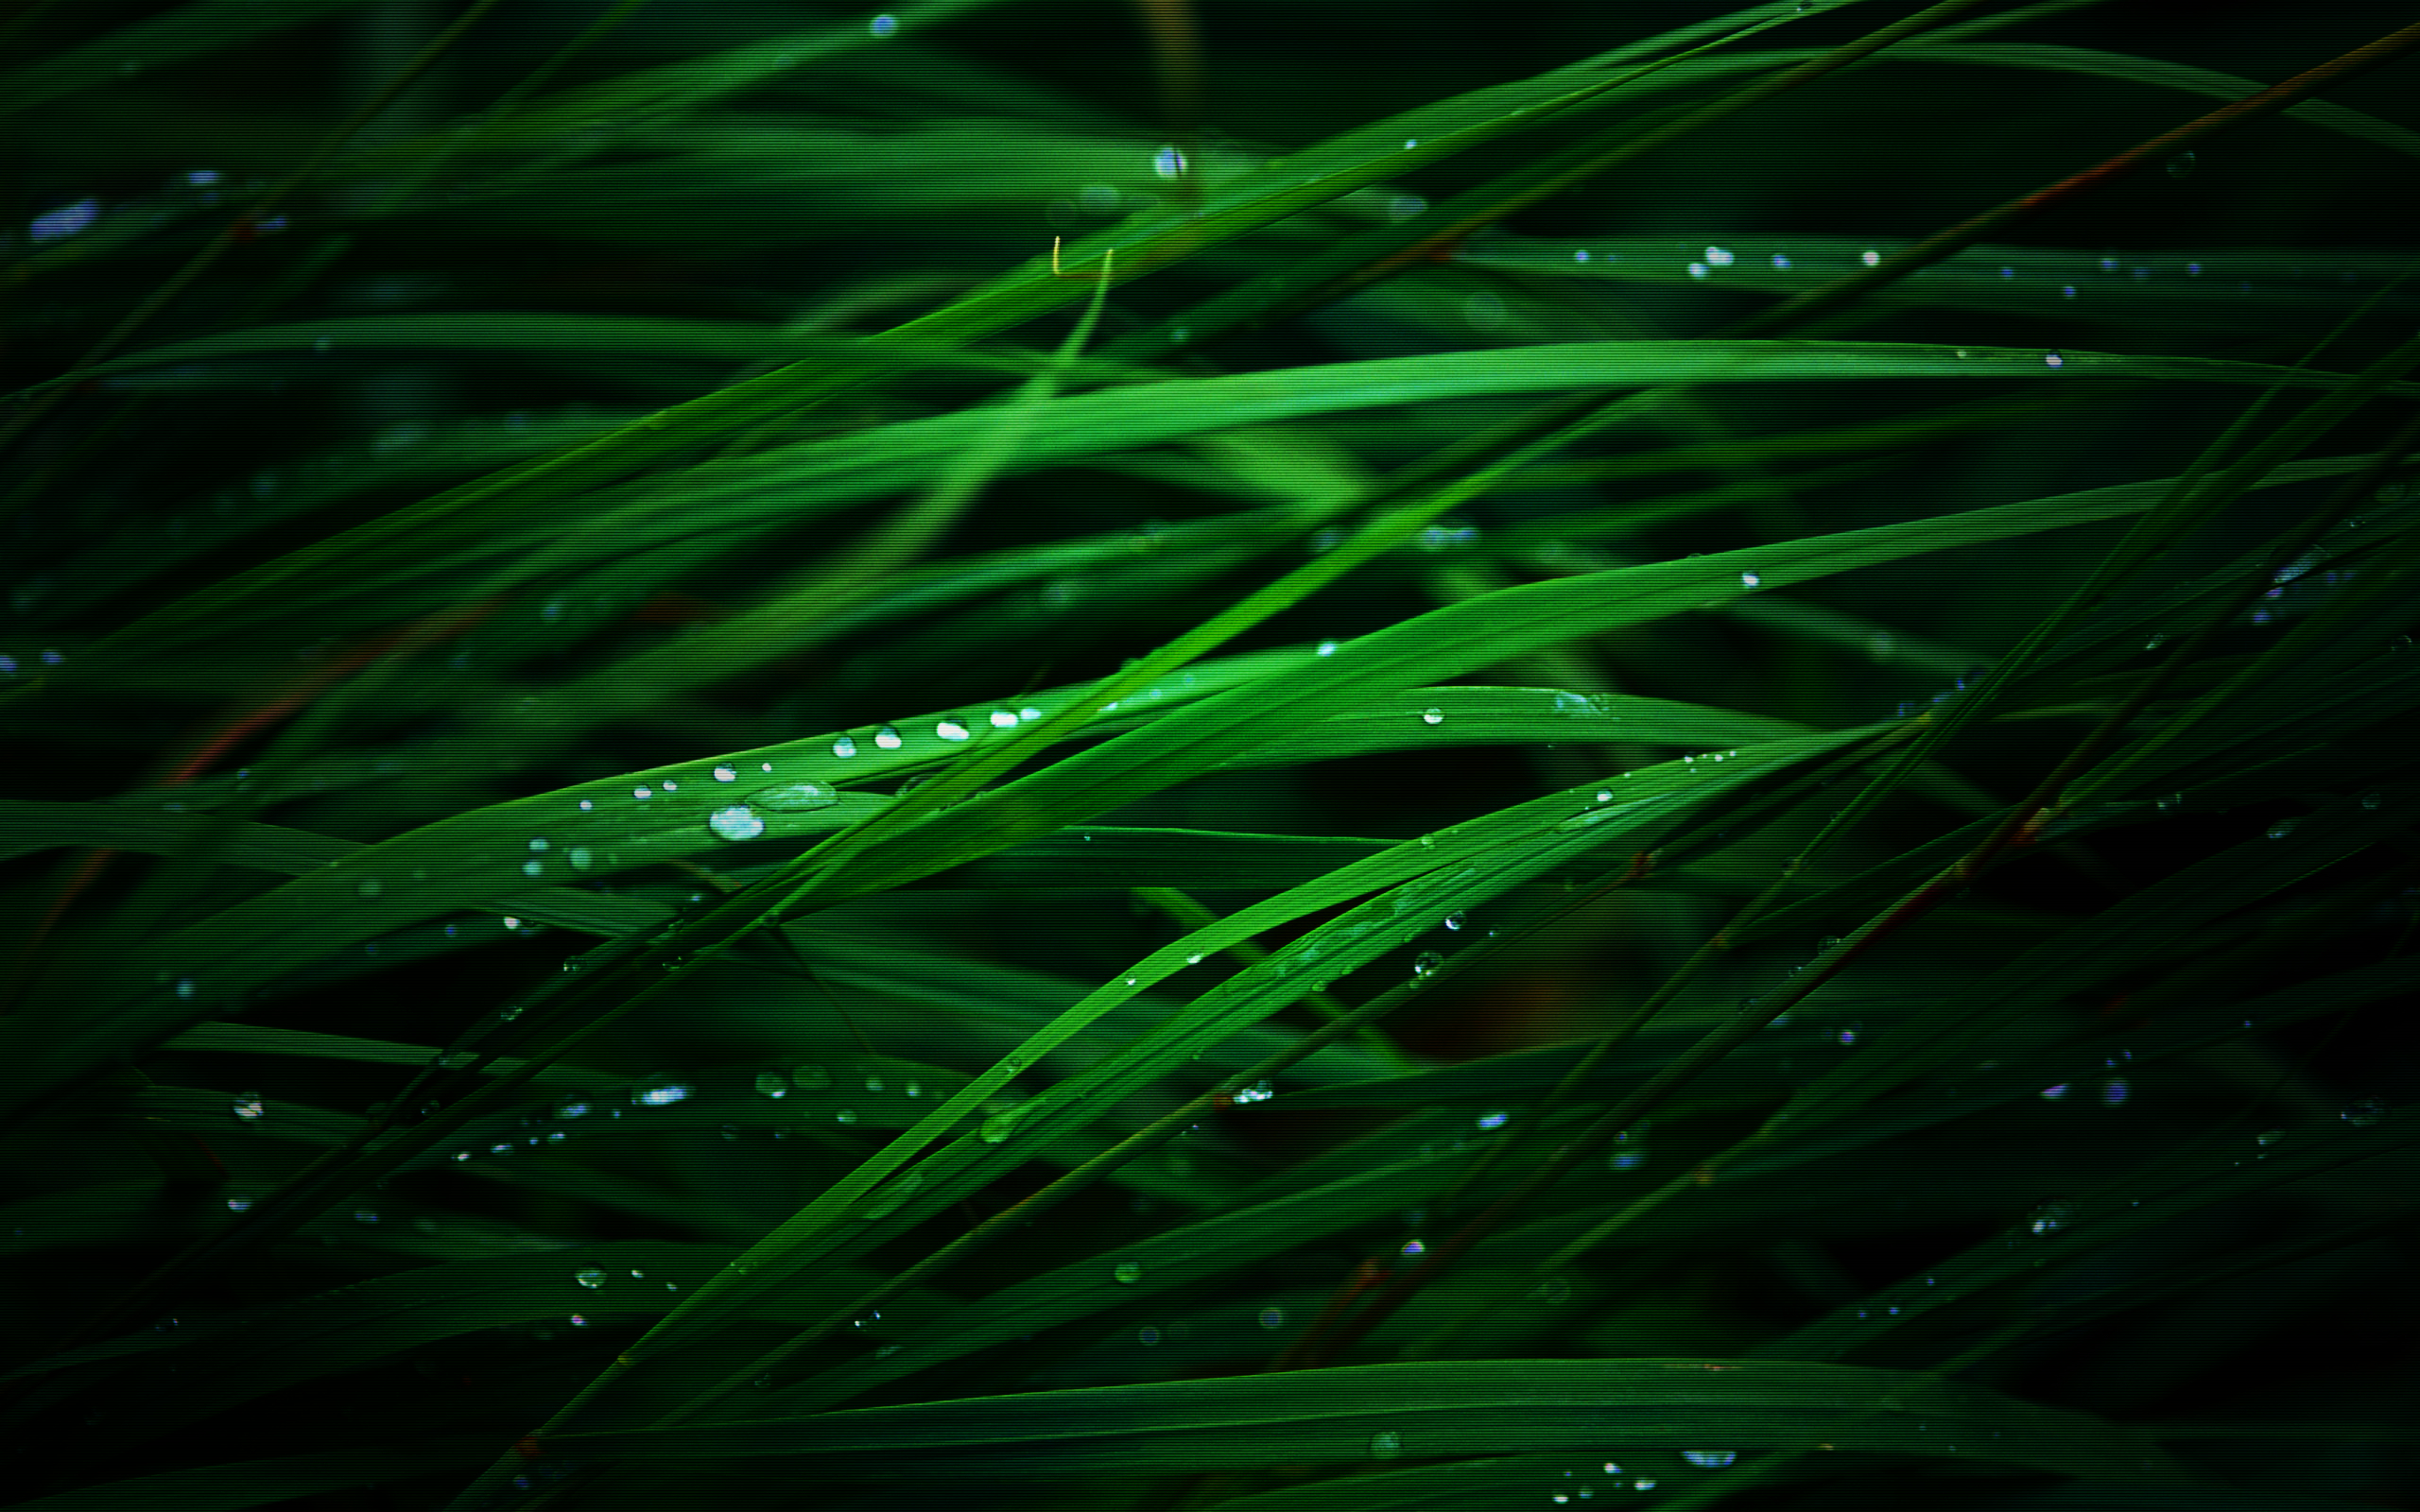 grass water drops ot HD Wallpaper